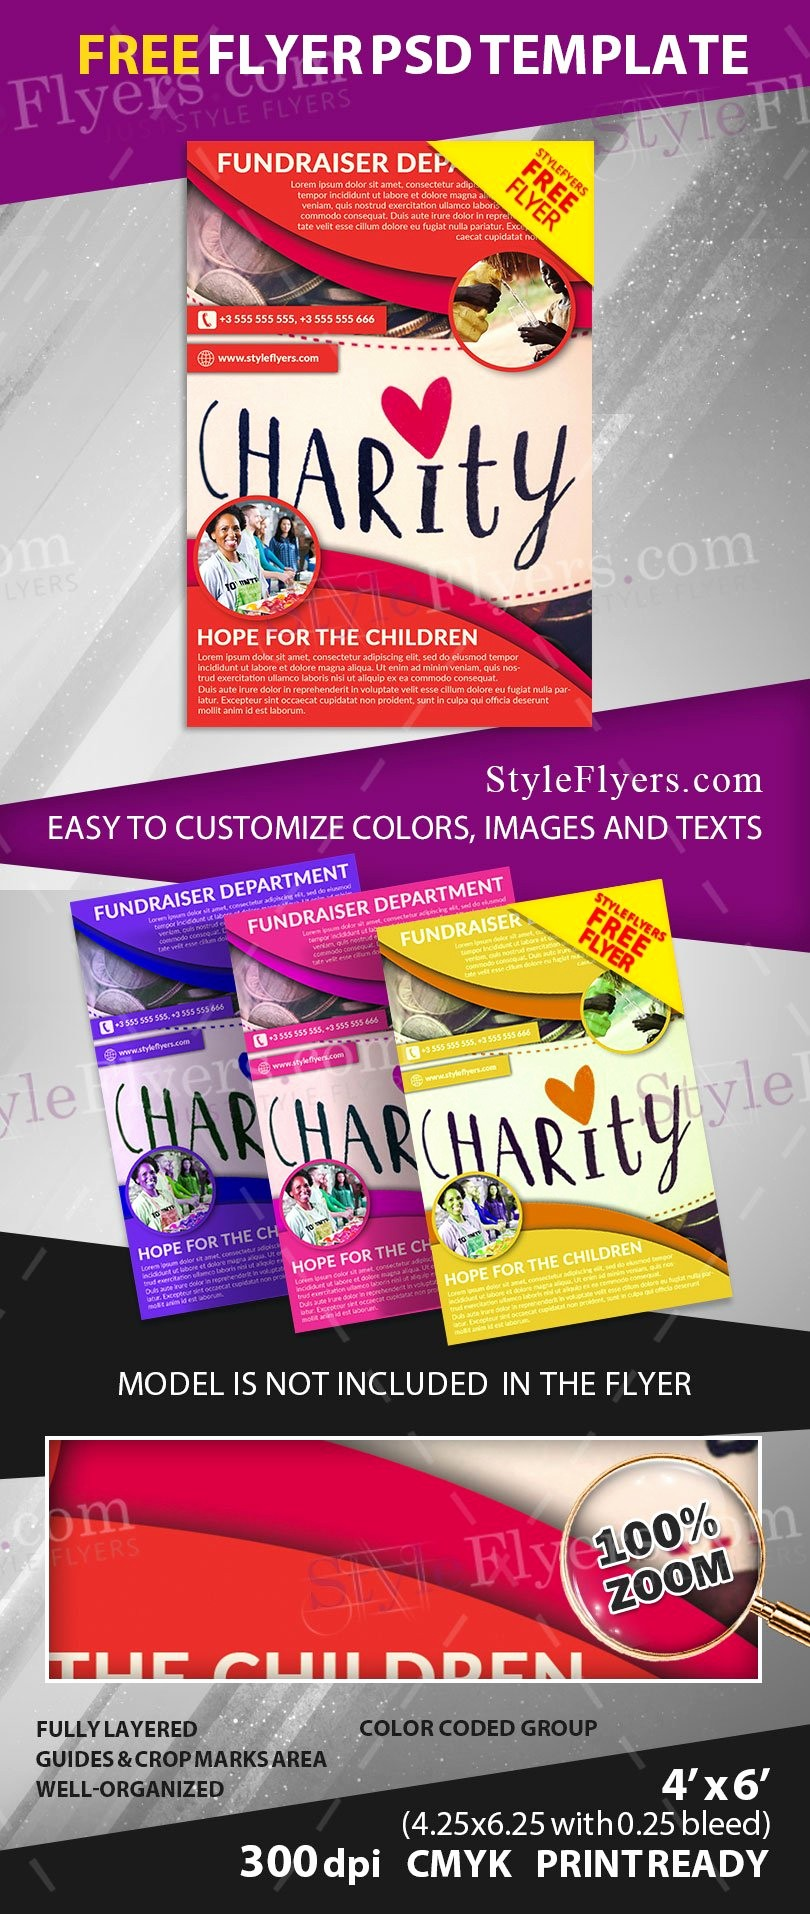 Flyers for Fundraisers Template Free Fresh Fundraiser Free Psd Flyer Template Free Download